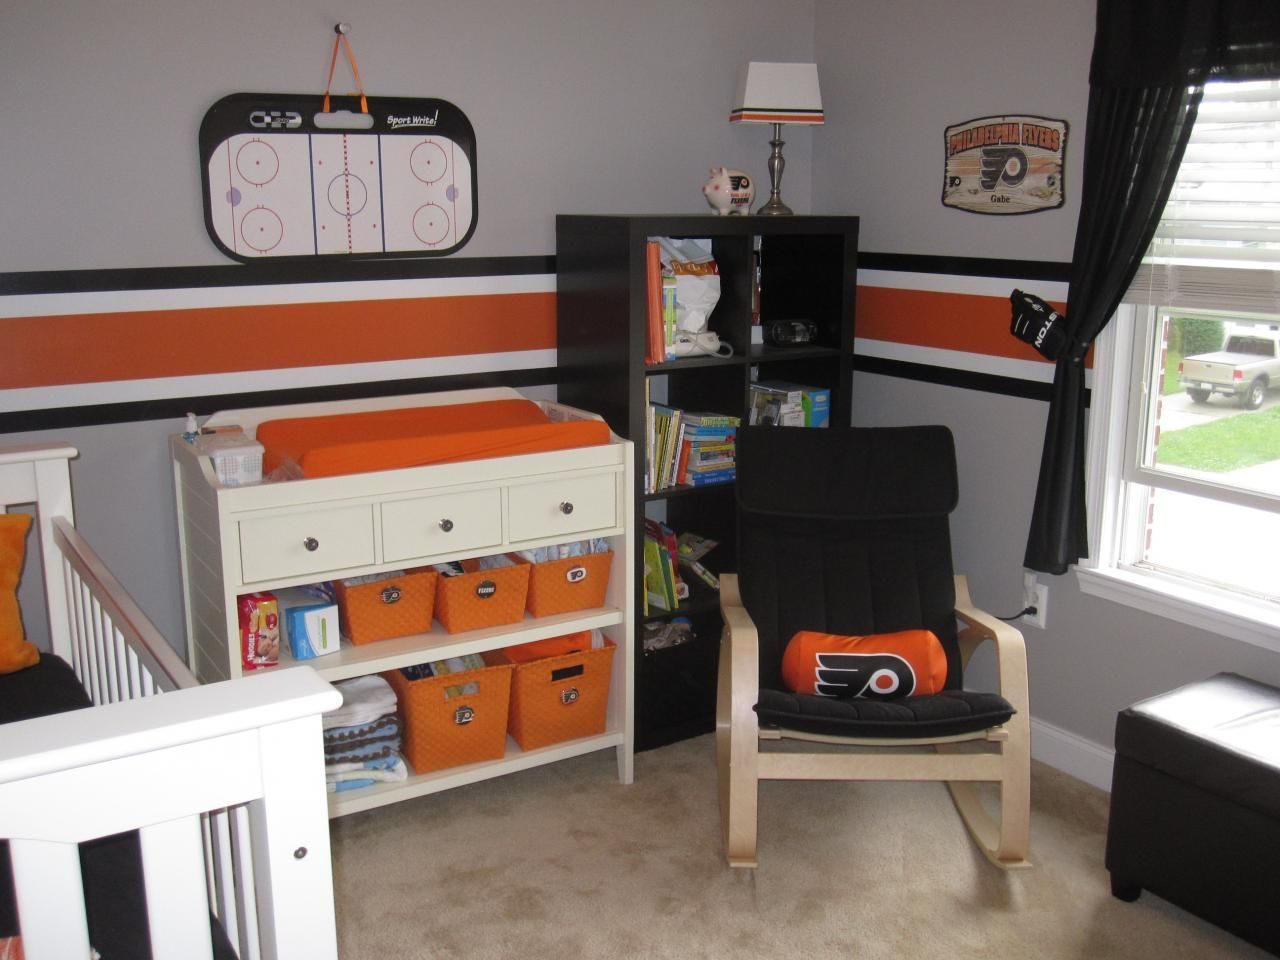 Philadelphia flyers nursery google search david sport - Baby jungenzimmer ...